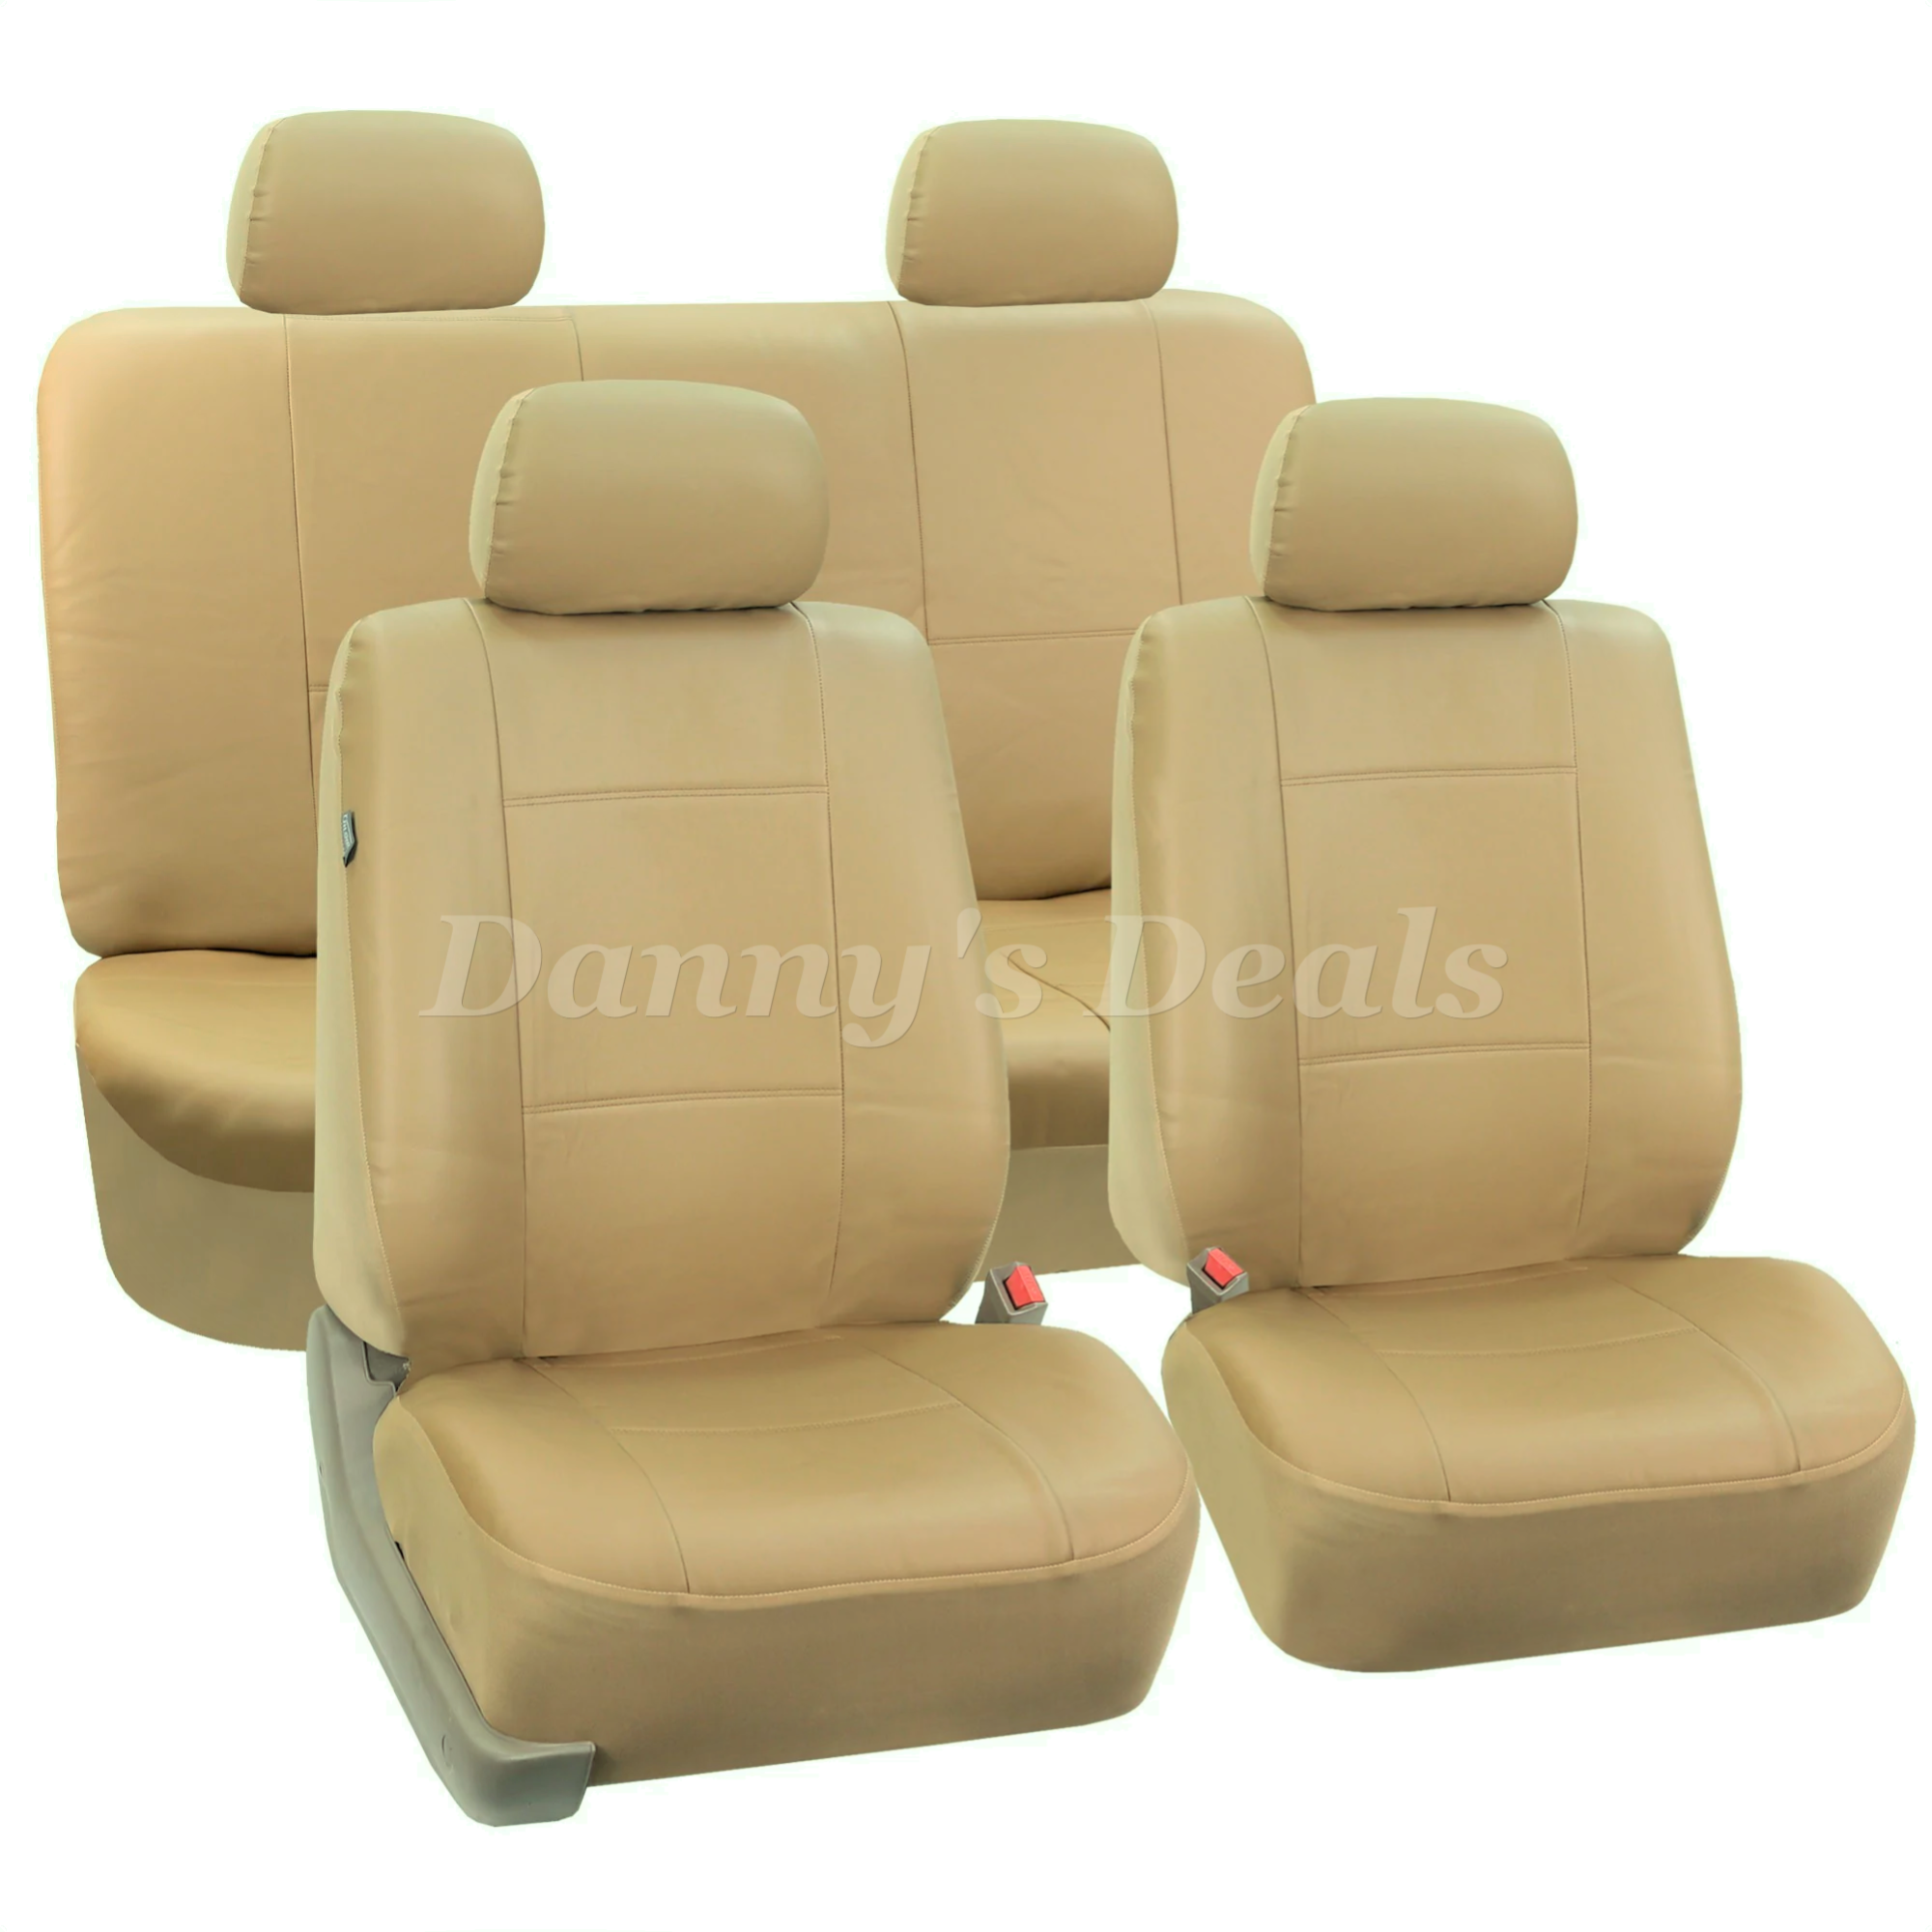 Cream Beige Leather Look Car Seat Covers Cover For Hyundai